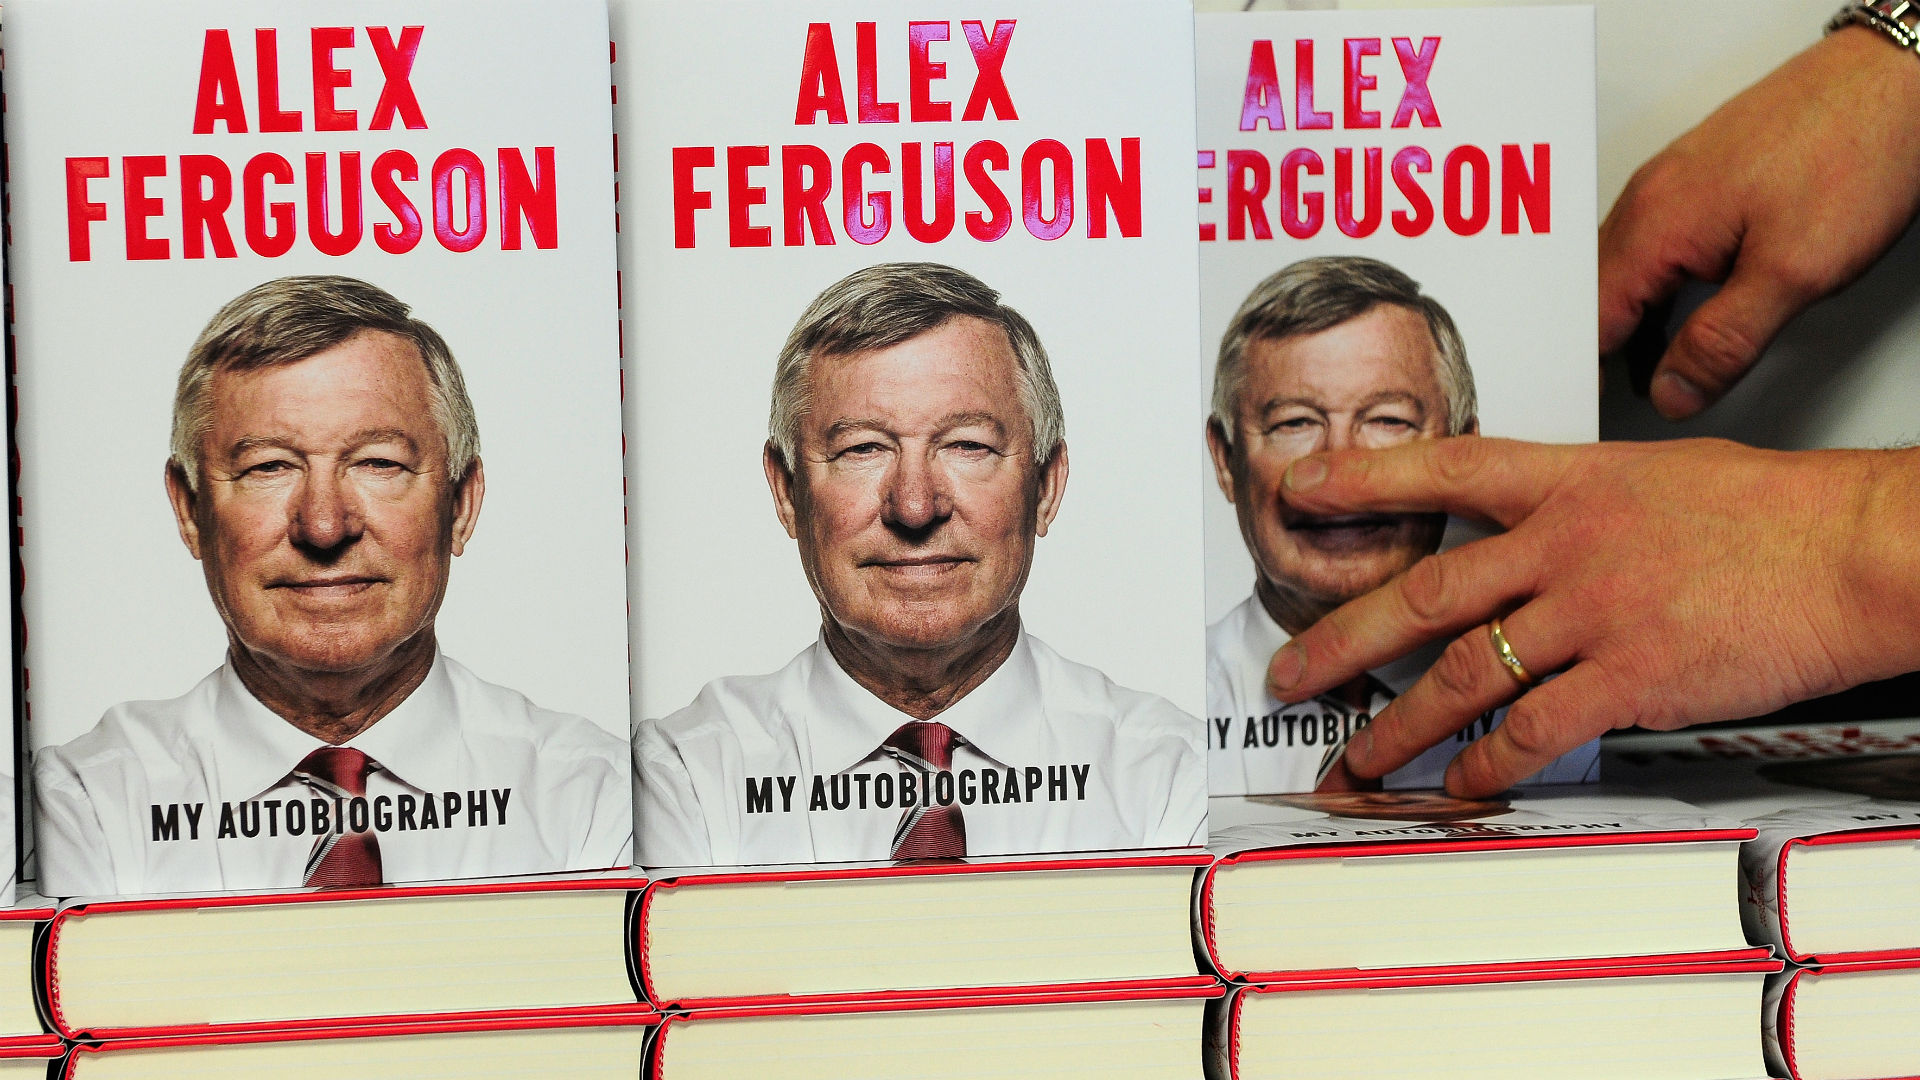 Sir Alex Ferguson book